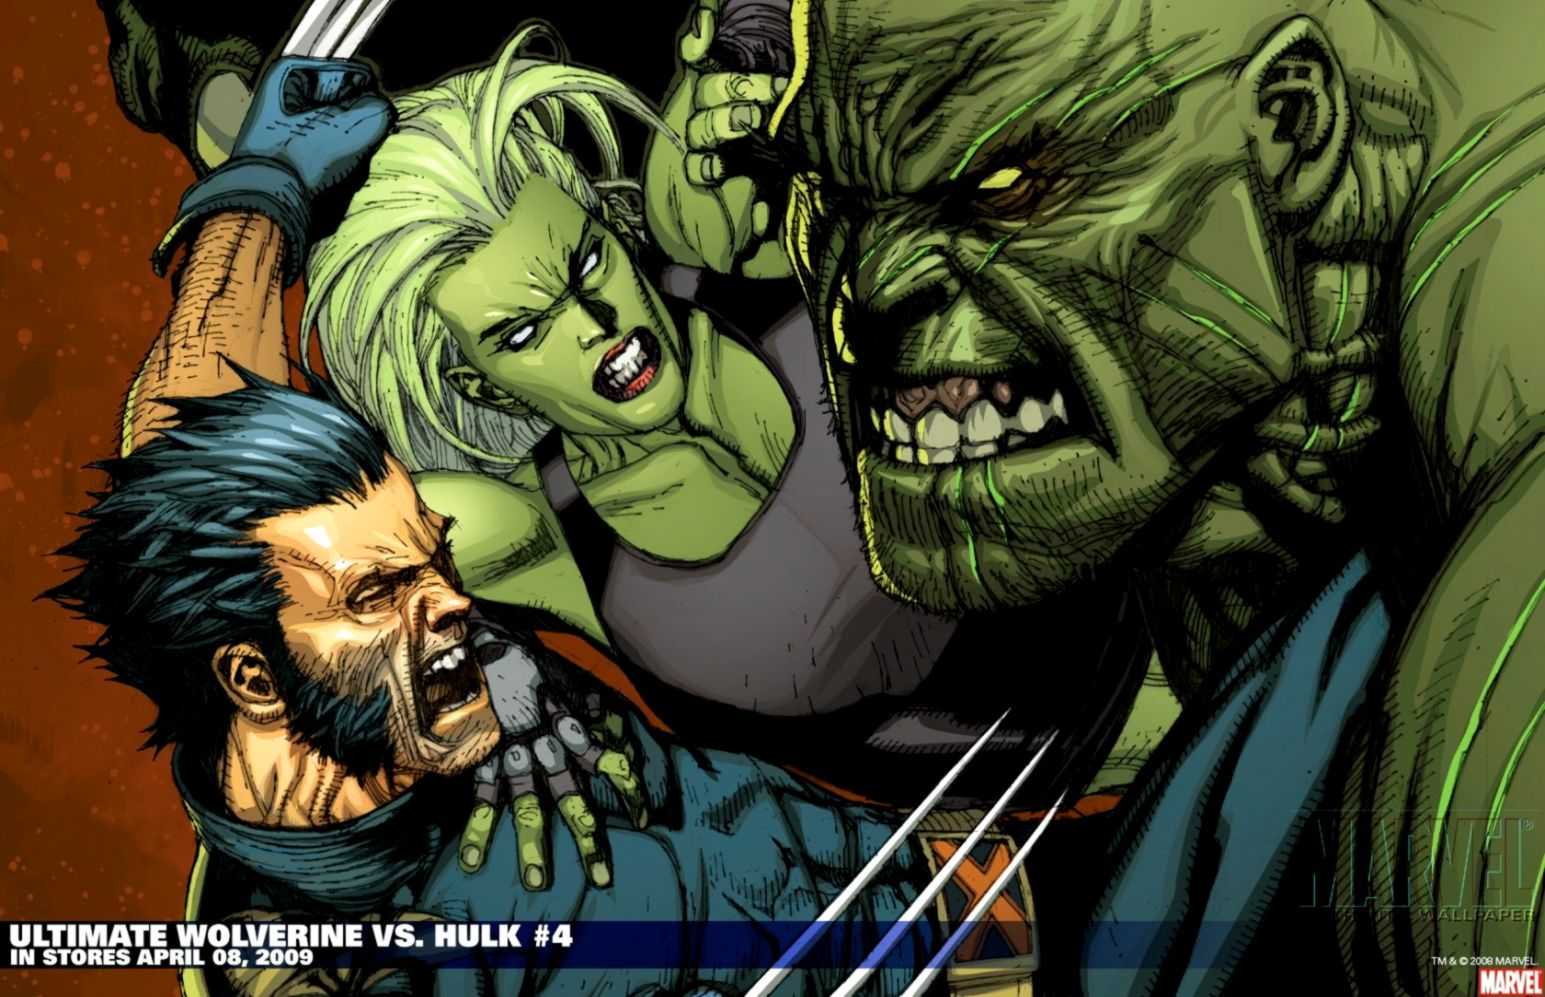 Hulk Vs Wolverine Hd Wallpaper Wallpapers Dope